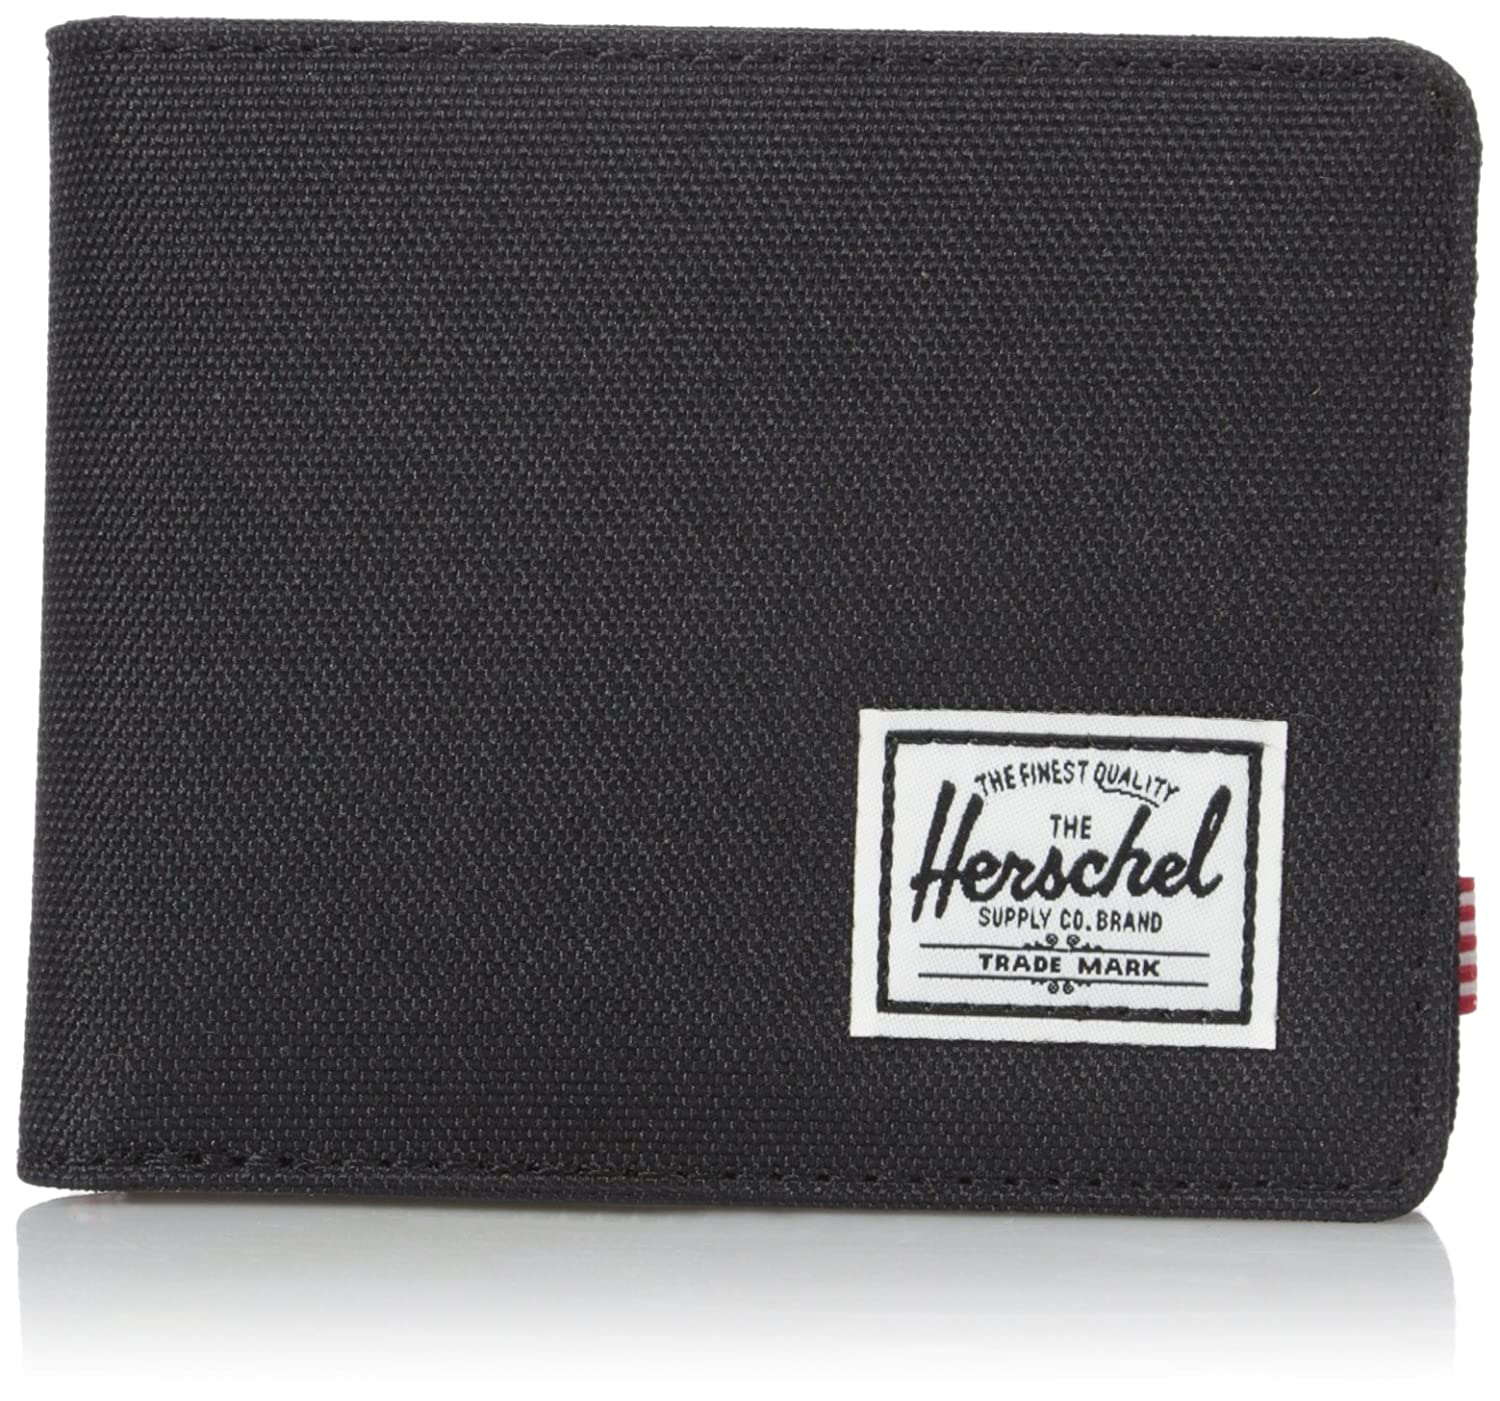 f1e05ffe28 Herschel Supply Co. Men's Roy + Coin RFID Blocking Wallet, Black: Amazon.co.uk:  Clothing